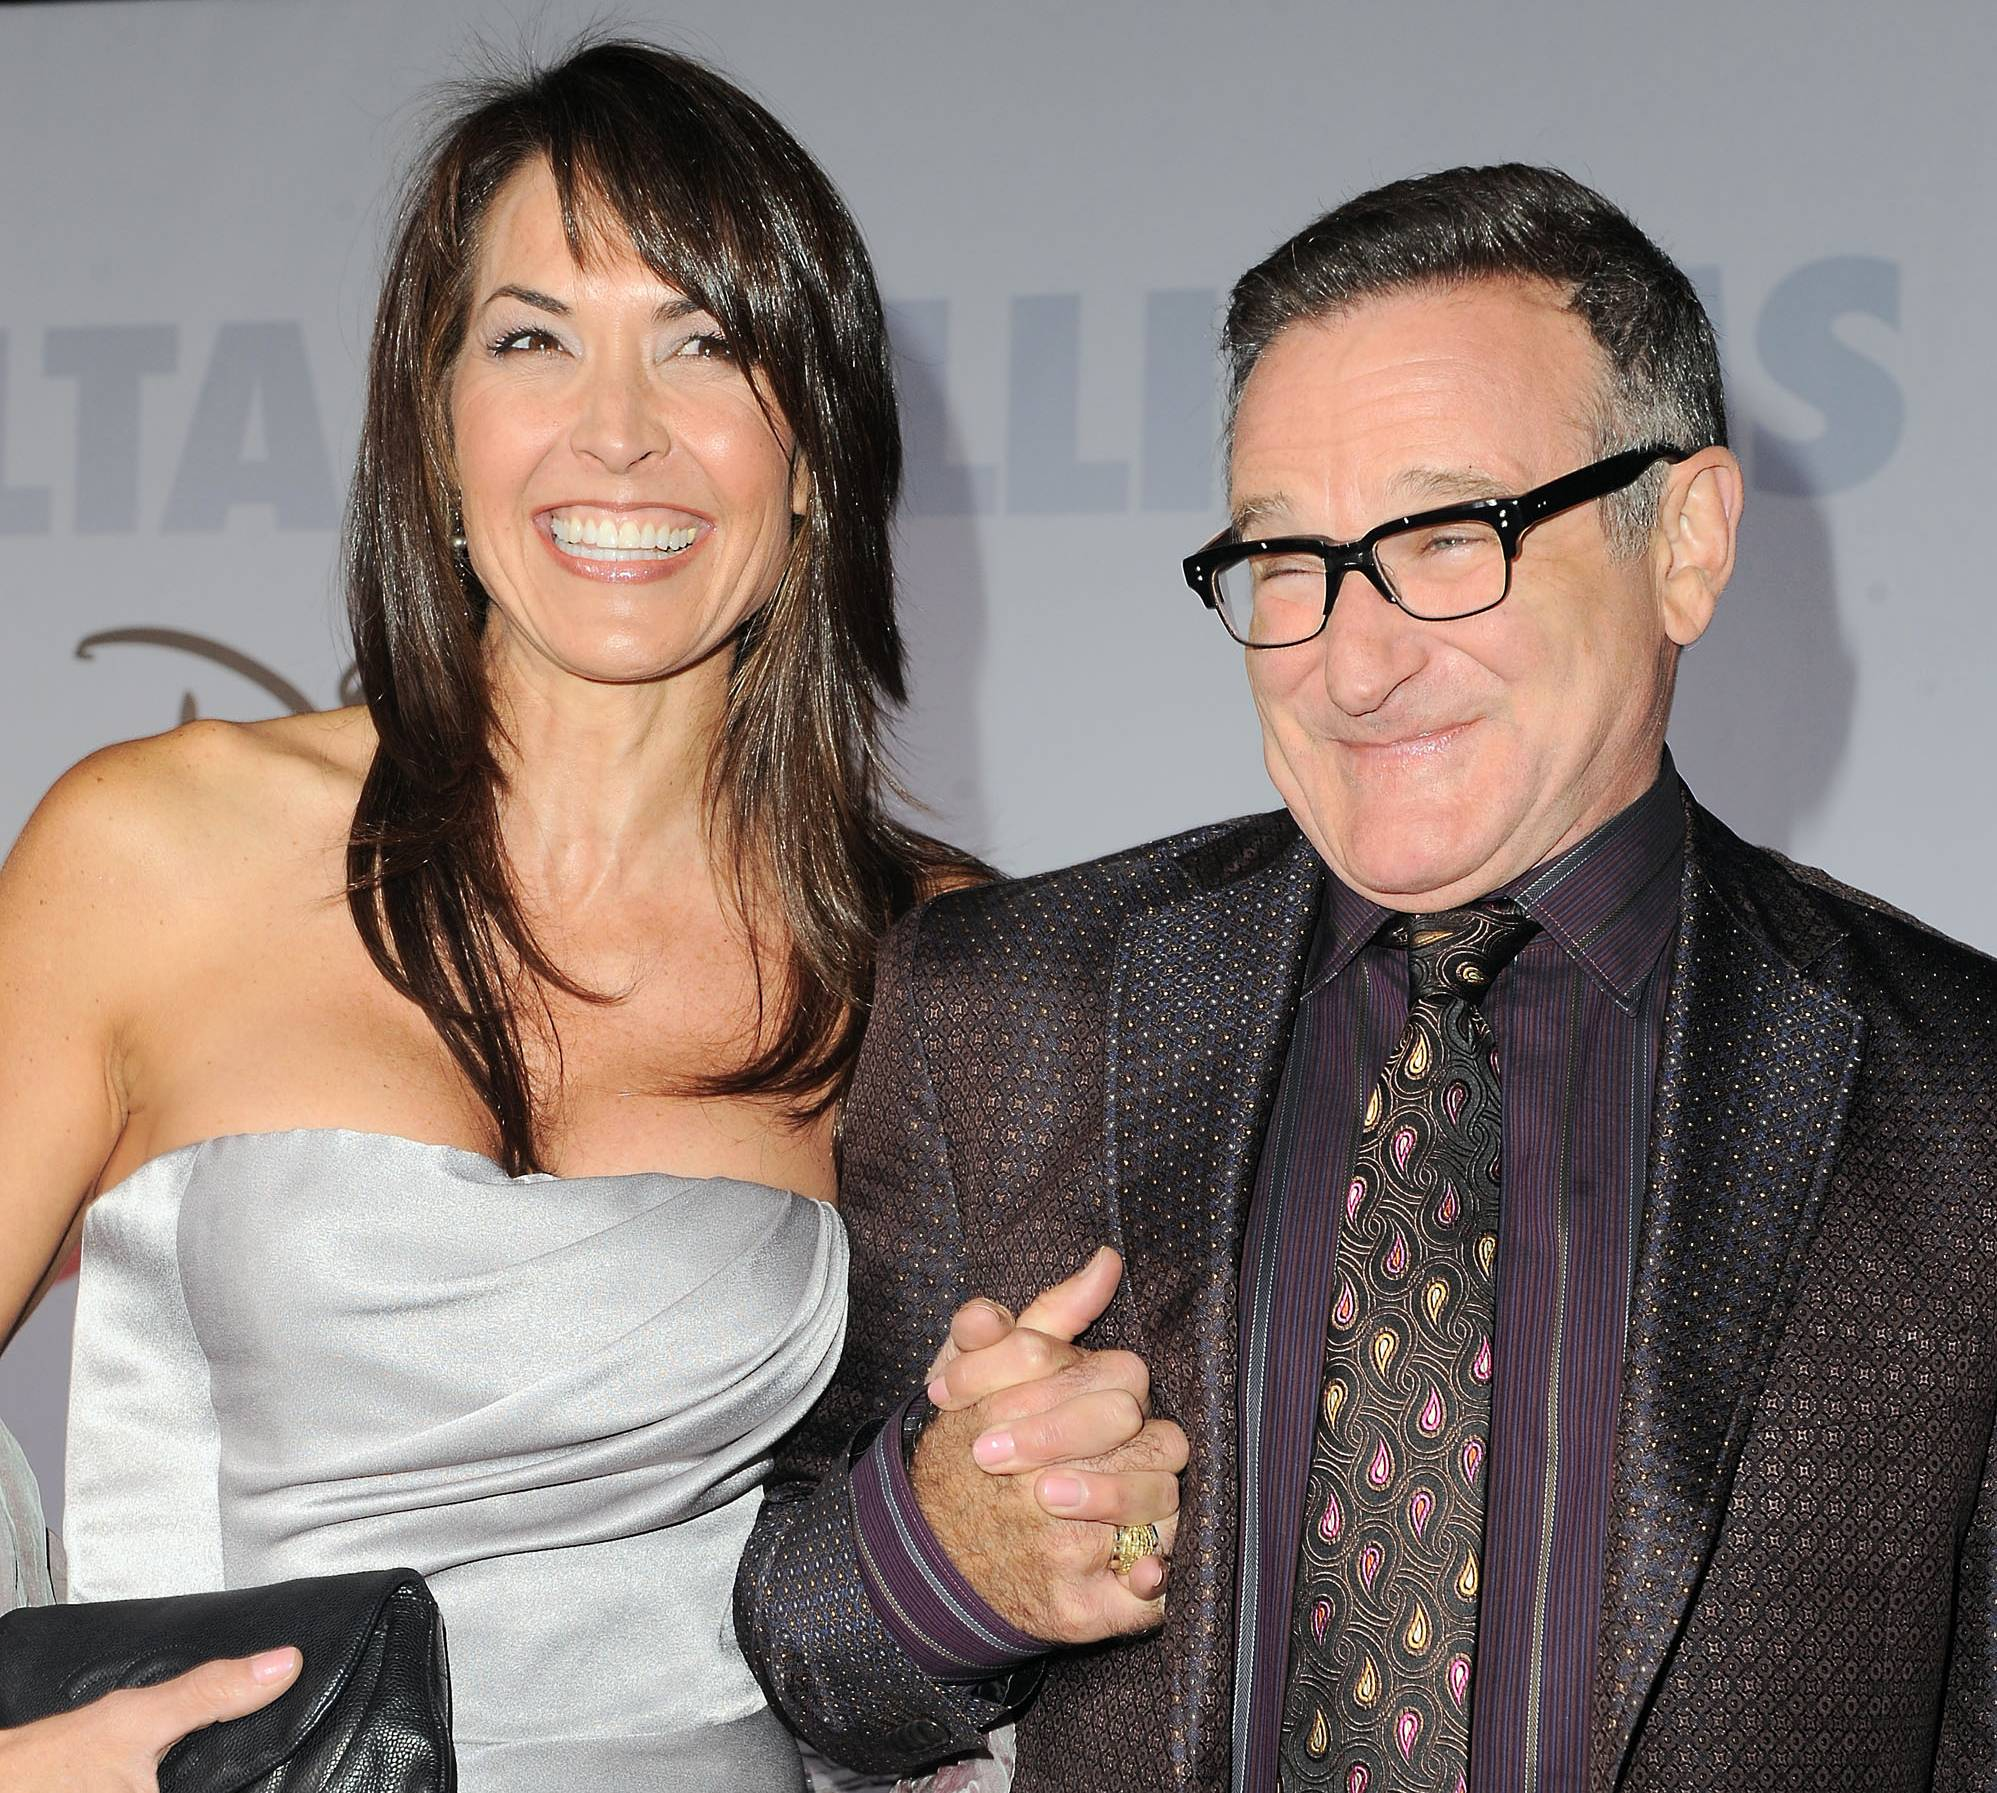 Robin Williams' wife: He had Parkinson's disease